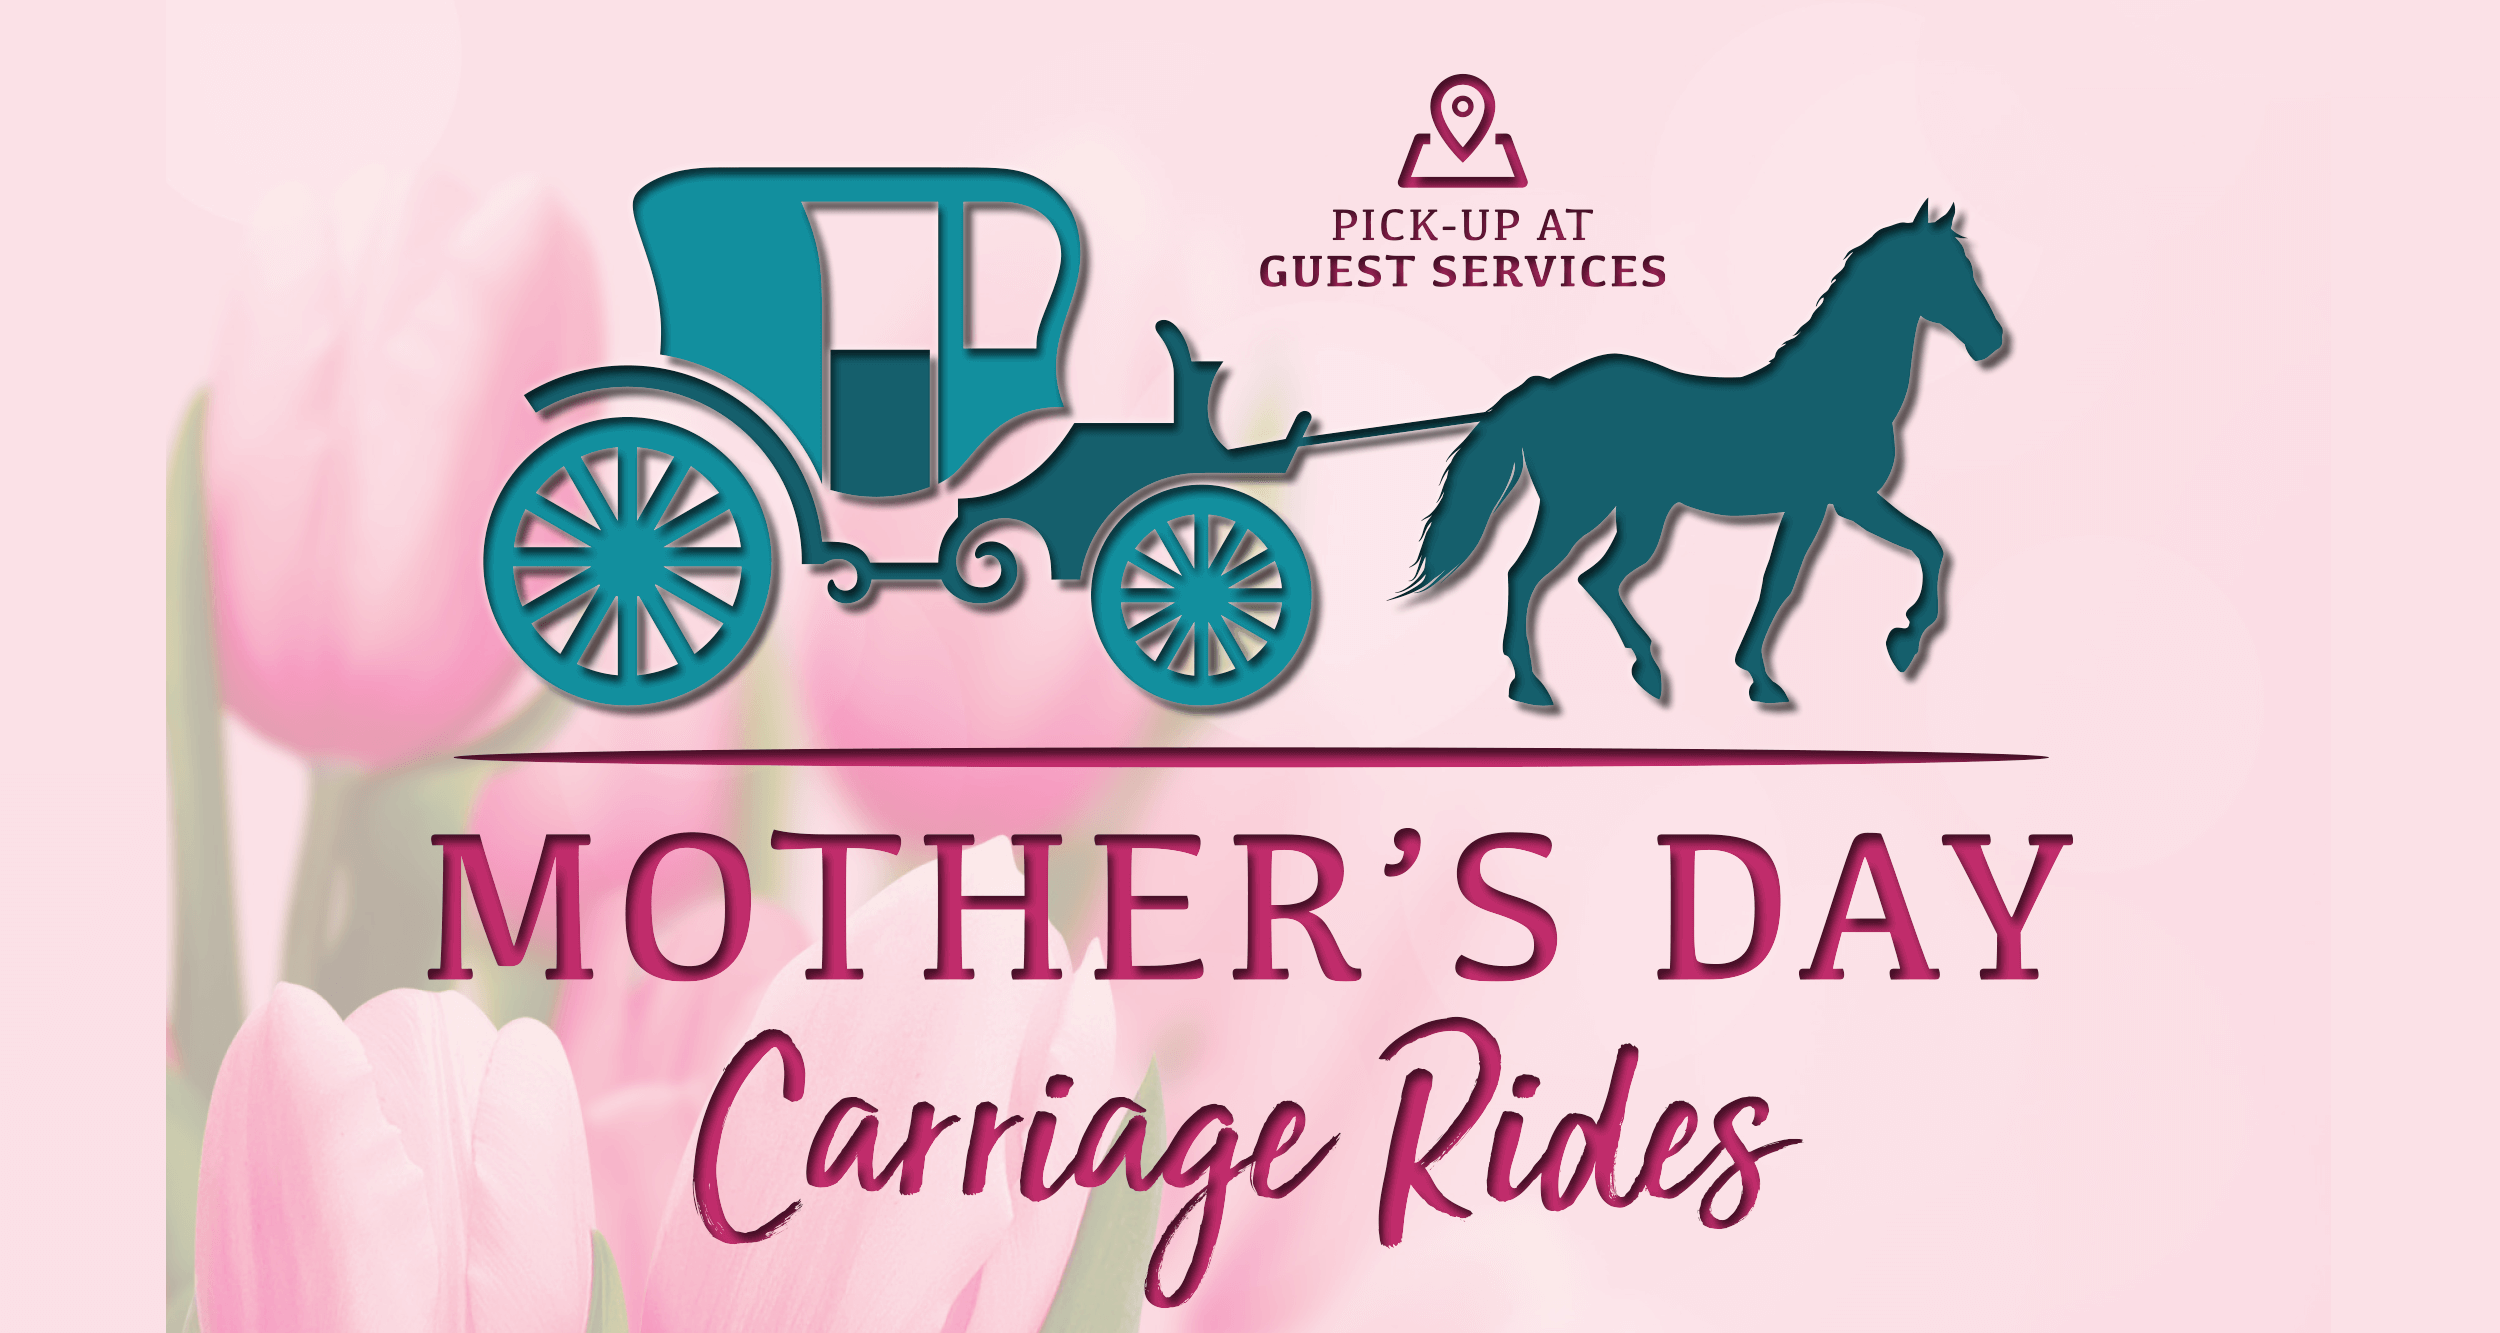 Mother's Day Carriage Rides